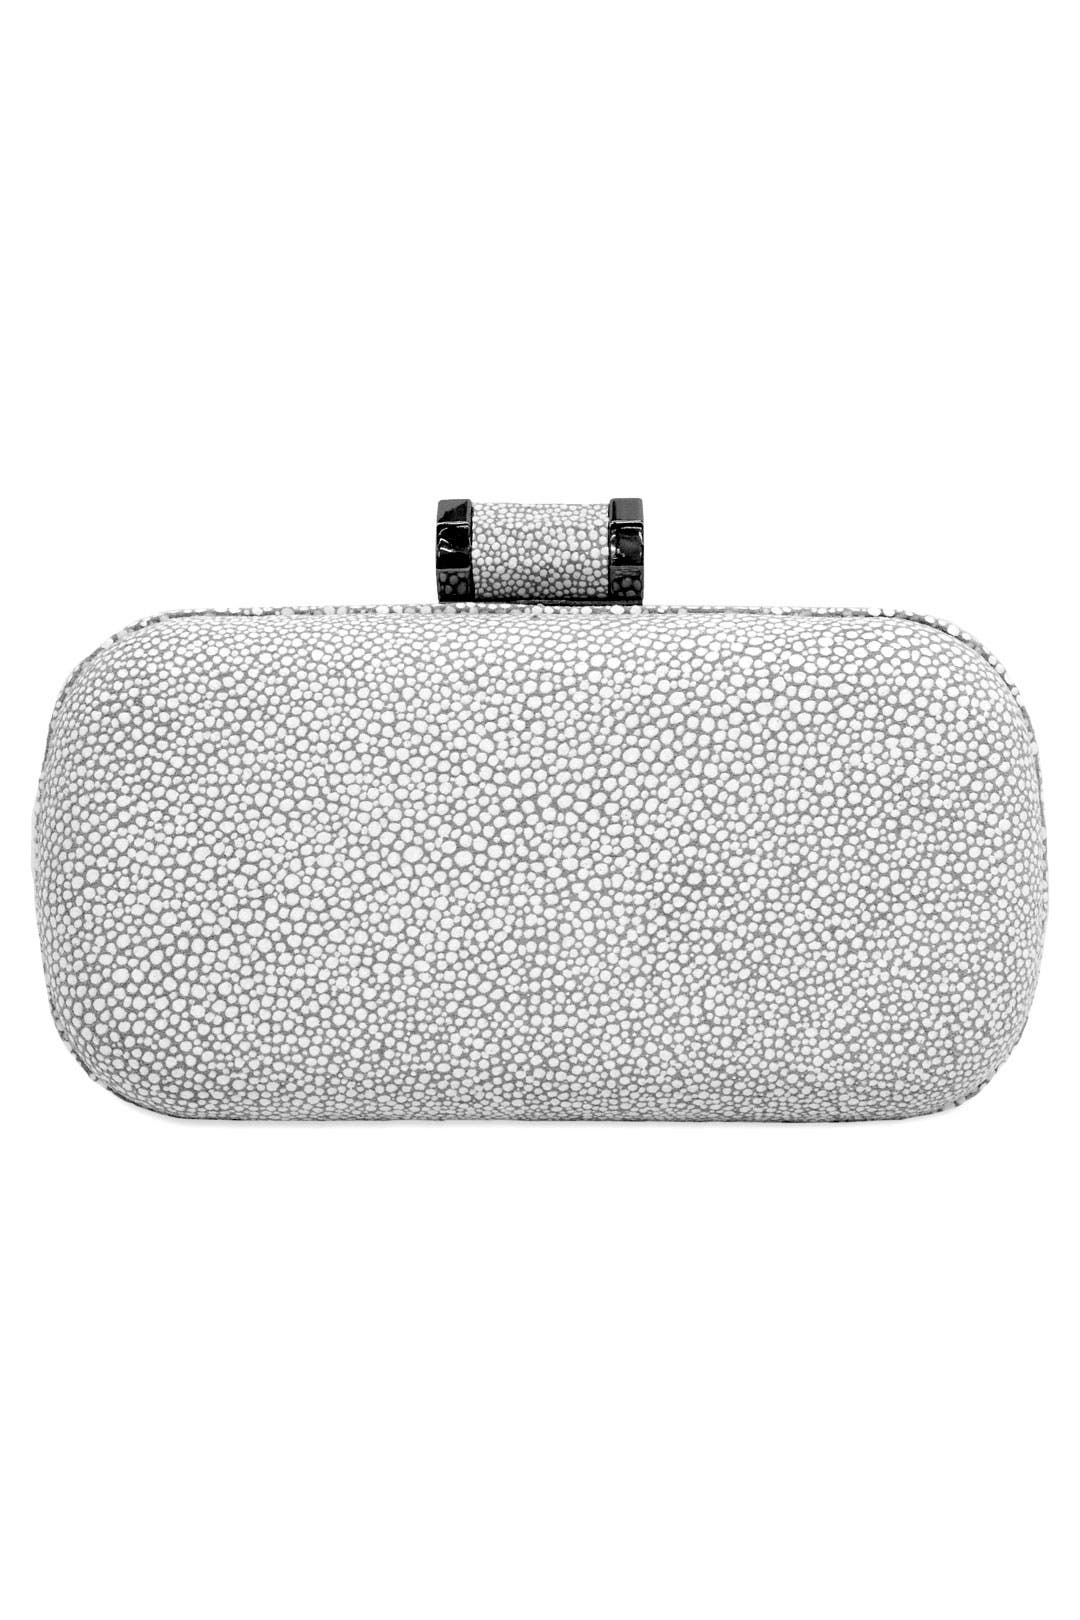 Vapor Stingray Clutch by Halston Heritage Handbags